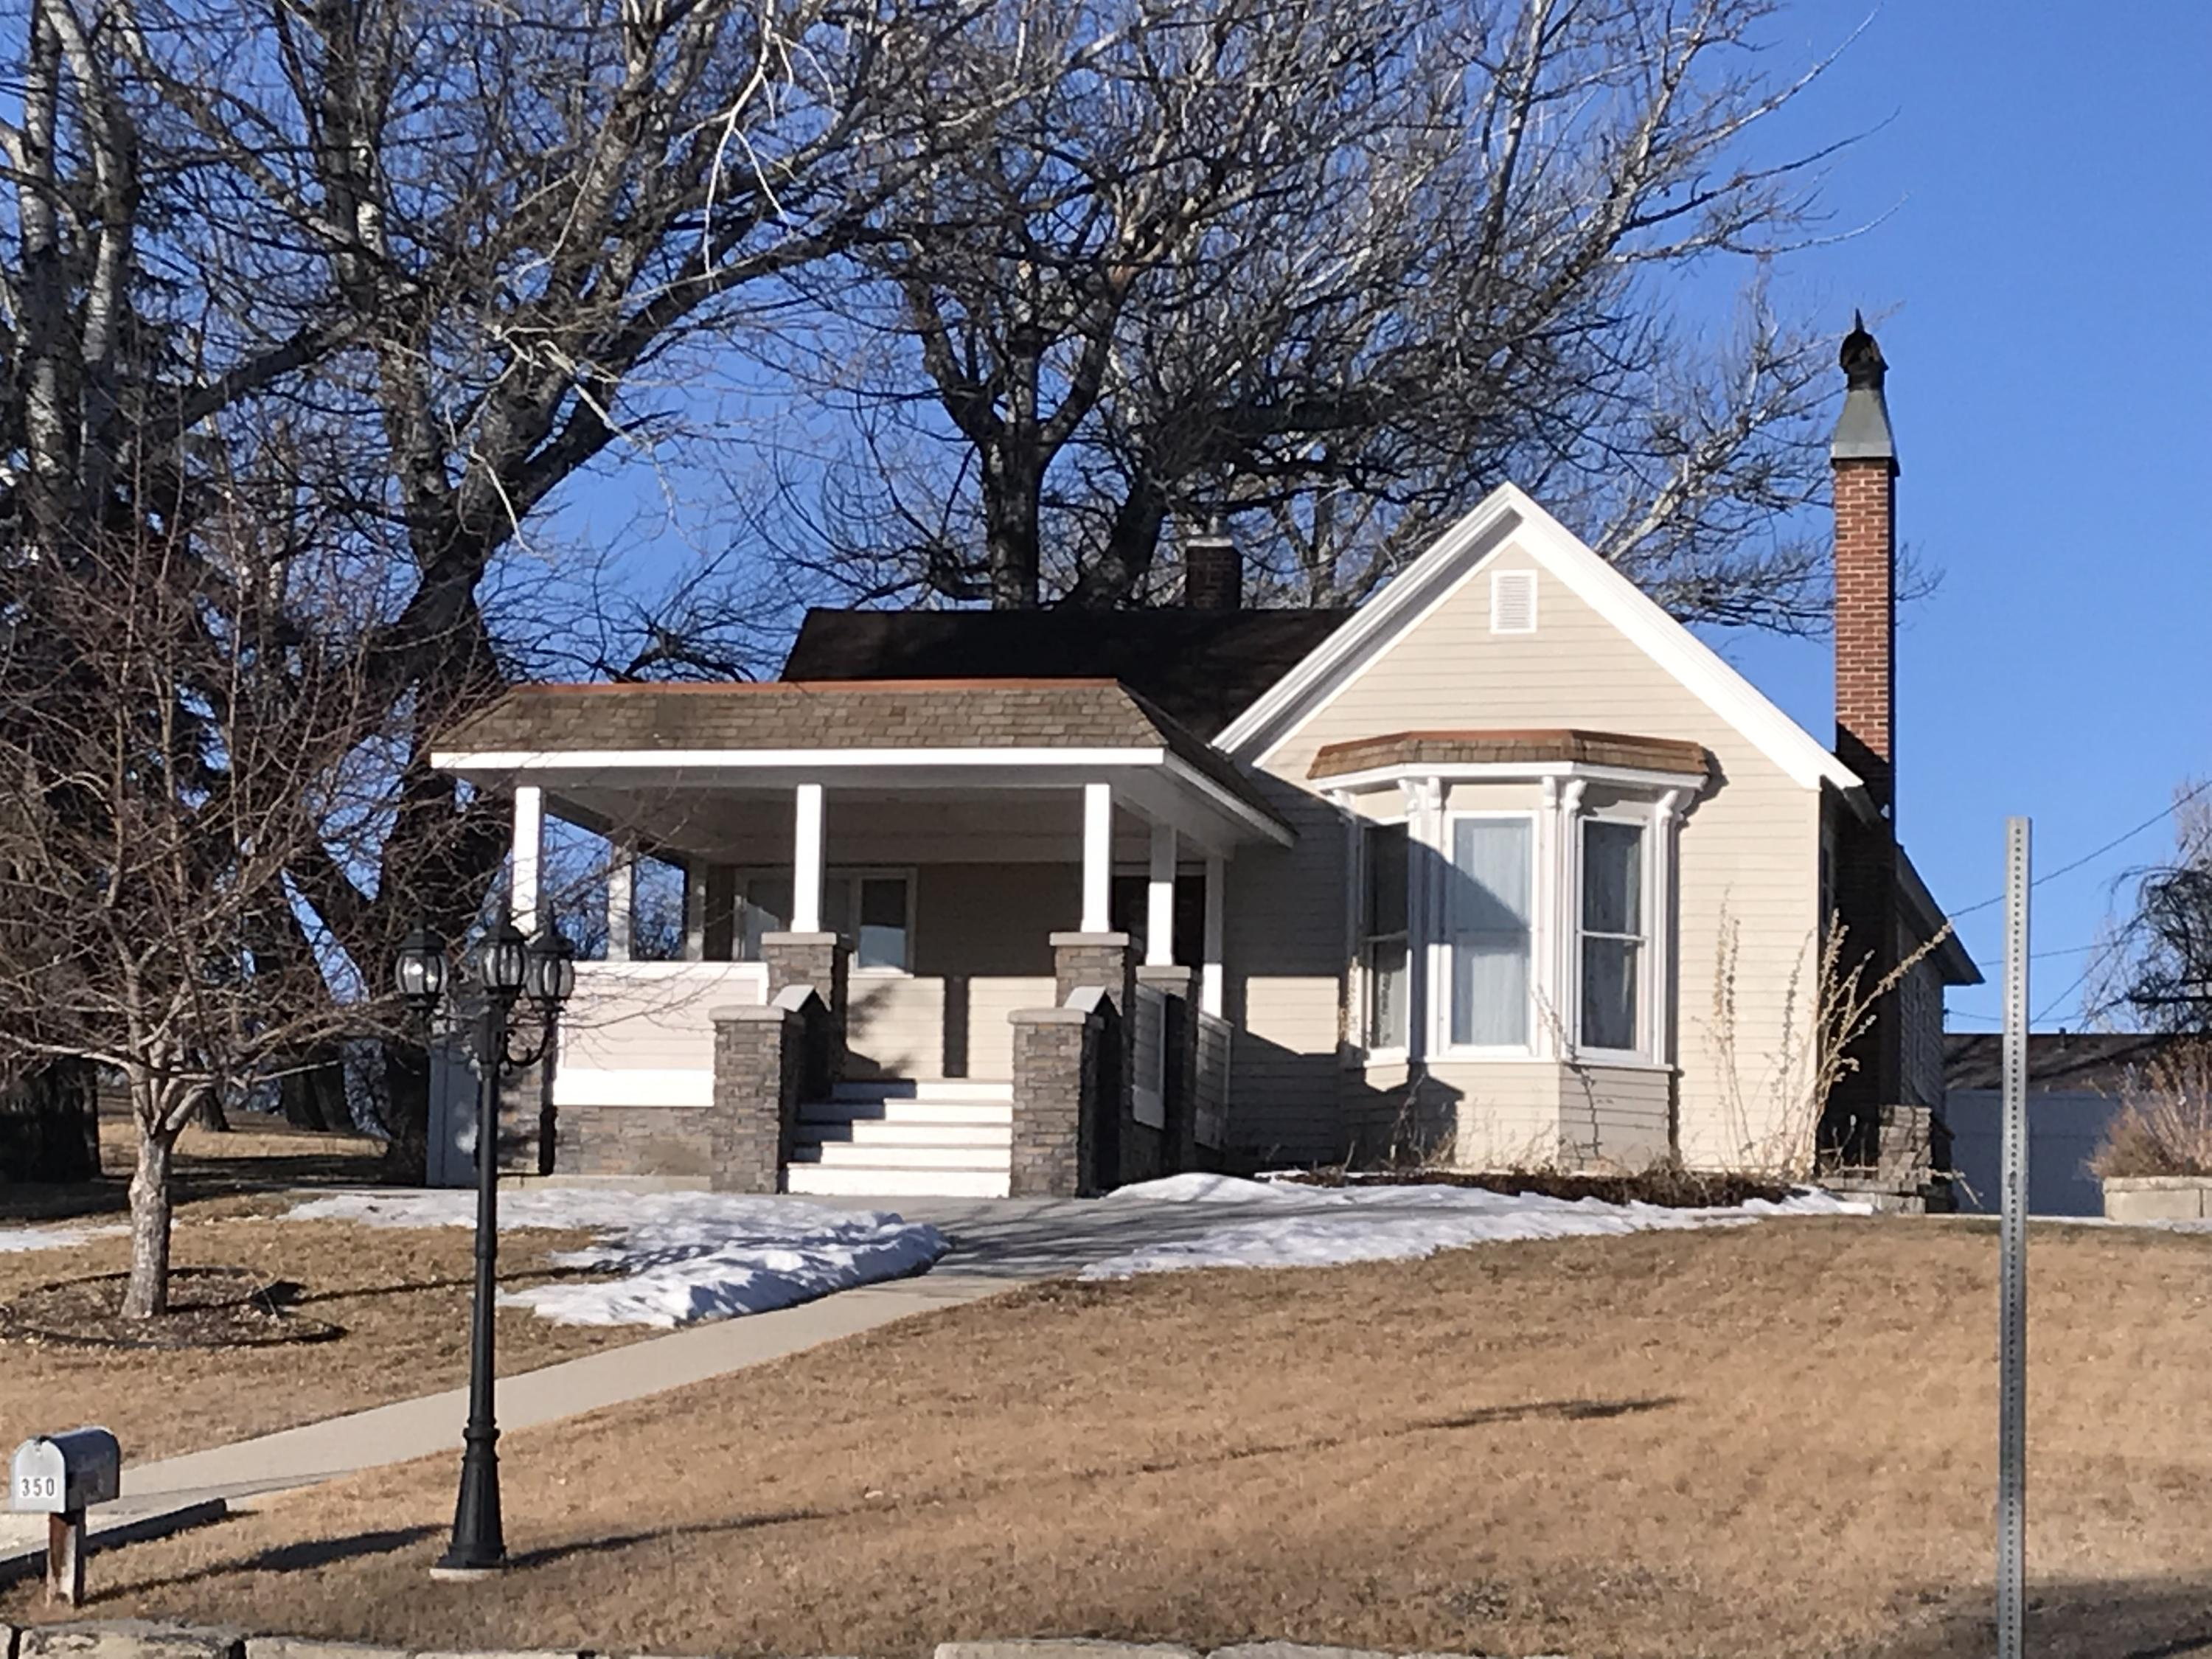 350 S Main Street, Buffalo, Wyoming 82834, 3 Bedrooms Bedrooms, ,2 BathroomsBathrooms,Residential,For Sale,Main,19-238